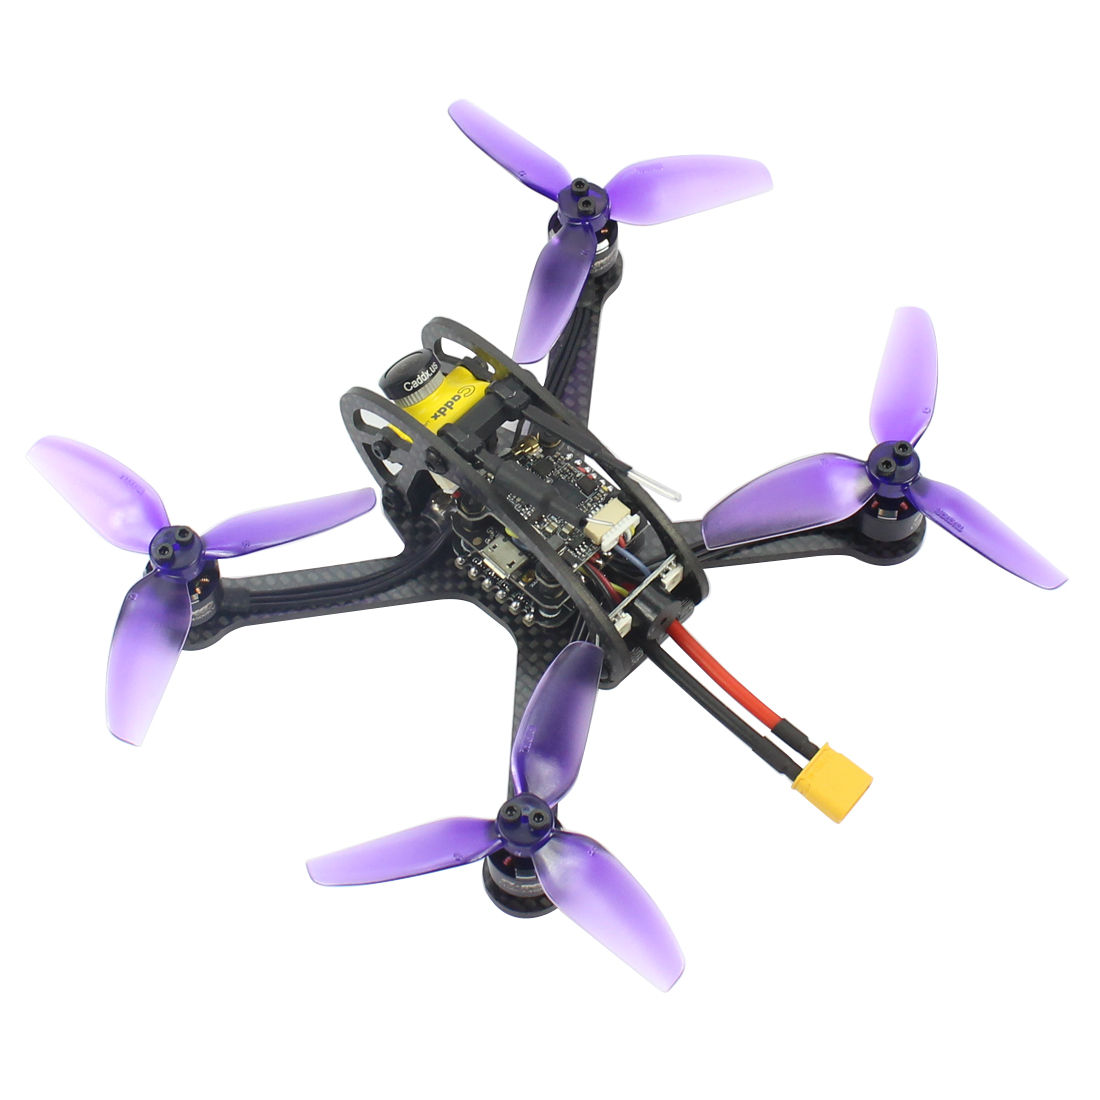 Leader3/3SE 130mm FPV Racing RC Drone F4 OSD 28A BLHeli_S 48 canaux 600 mW Caddx Micro F1 PNP/BNF pour FLYSKY FRSKY